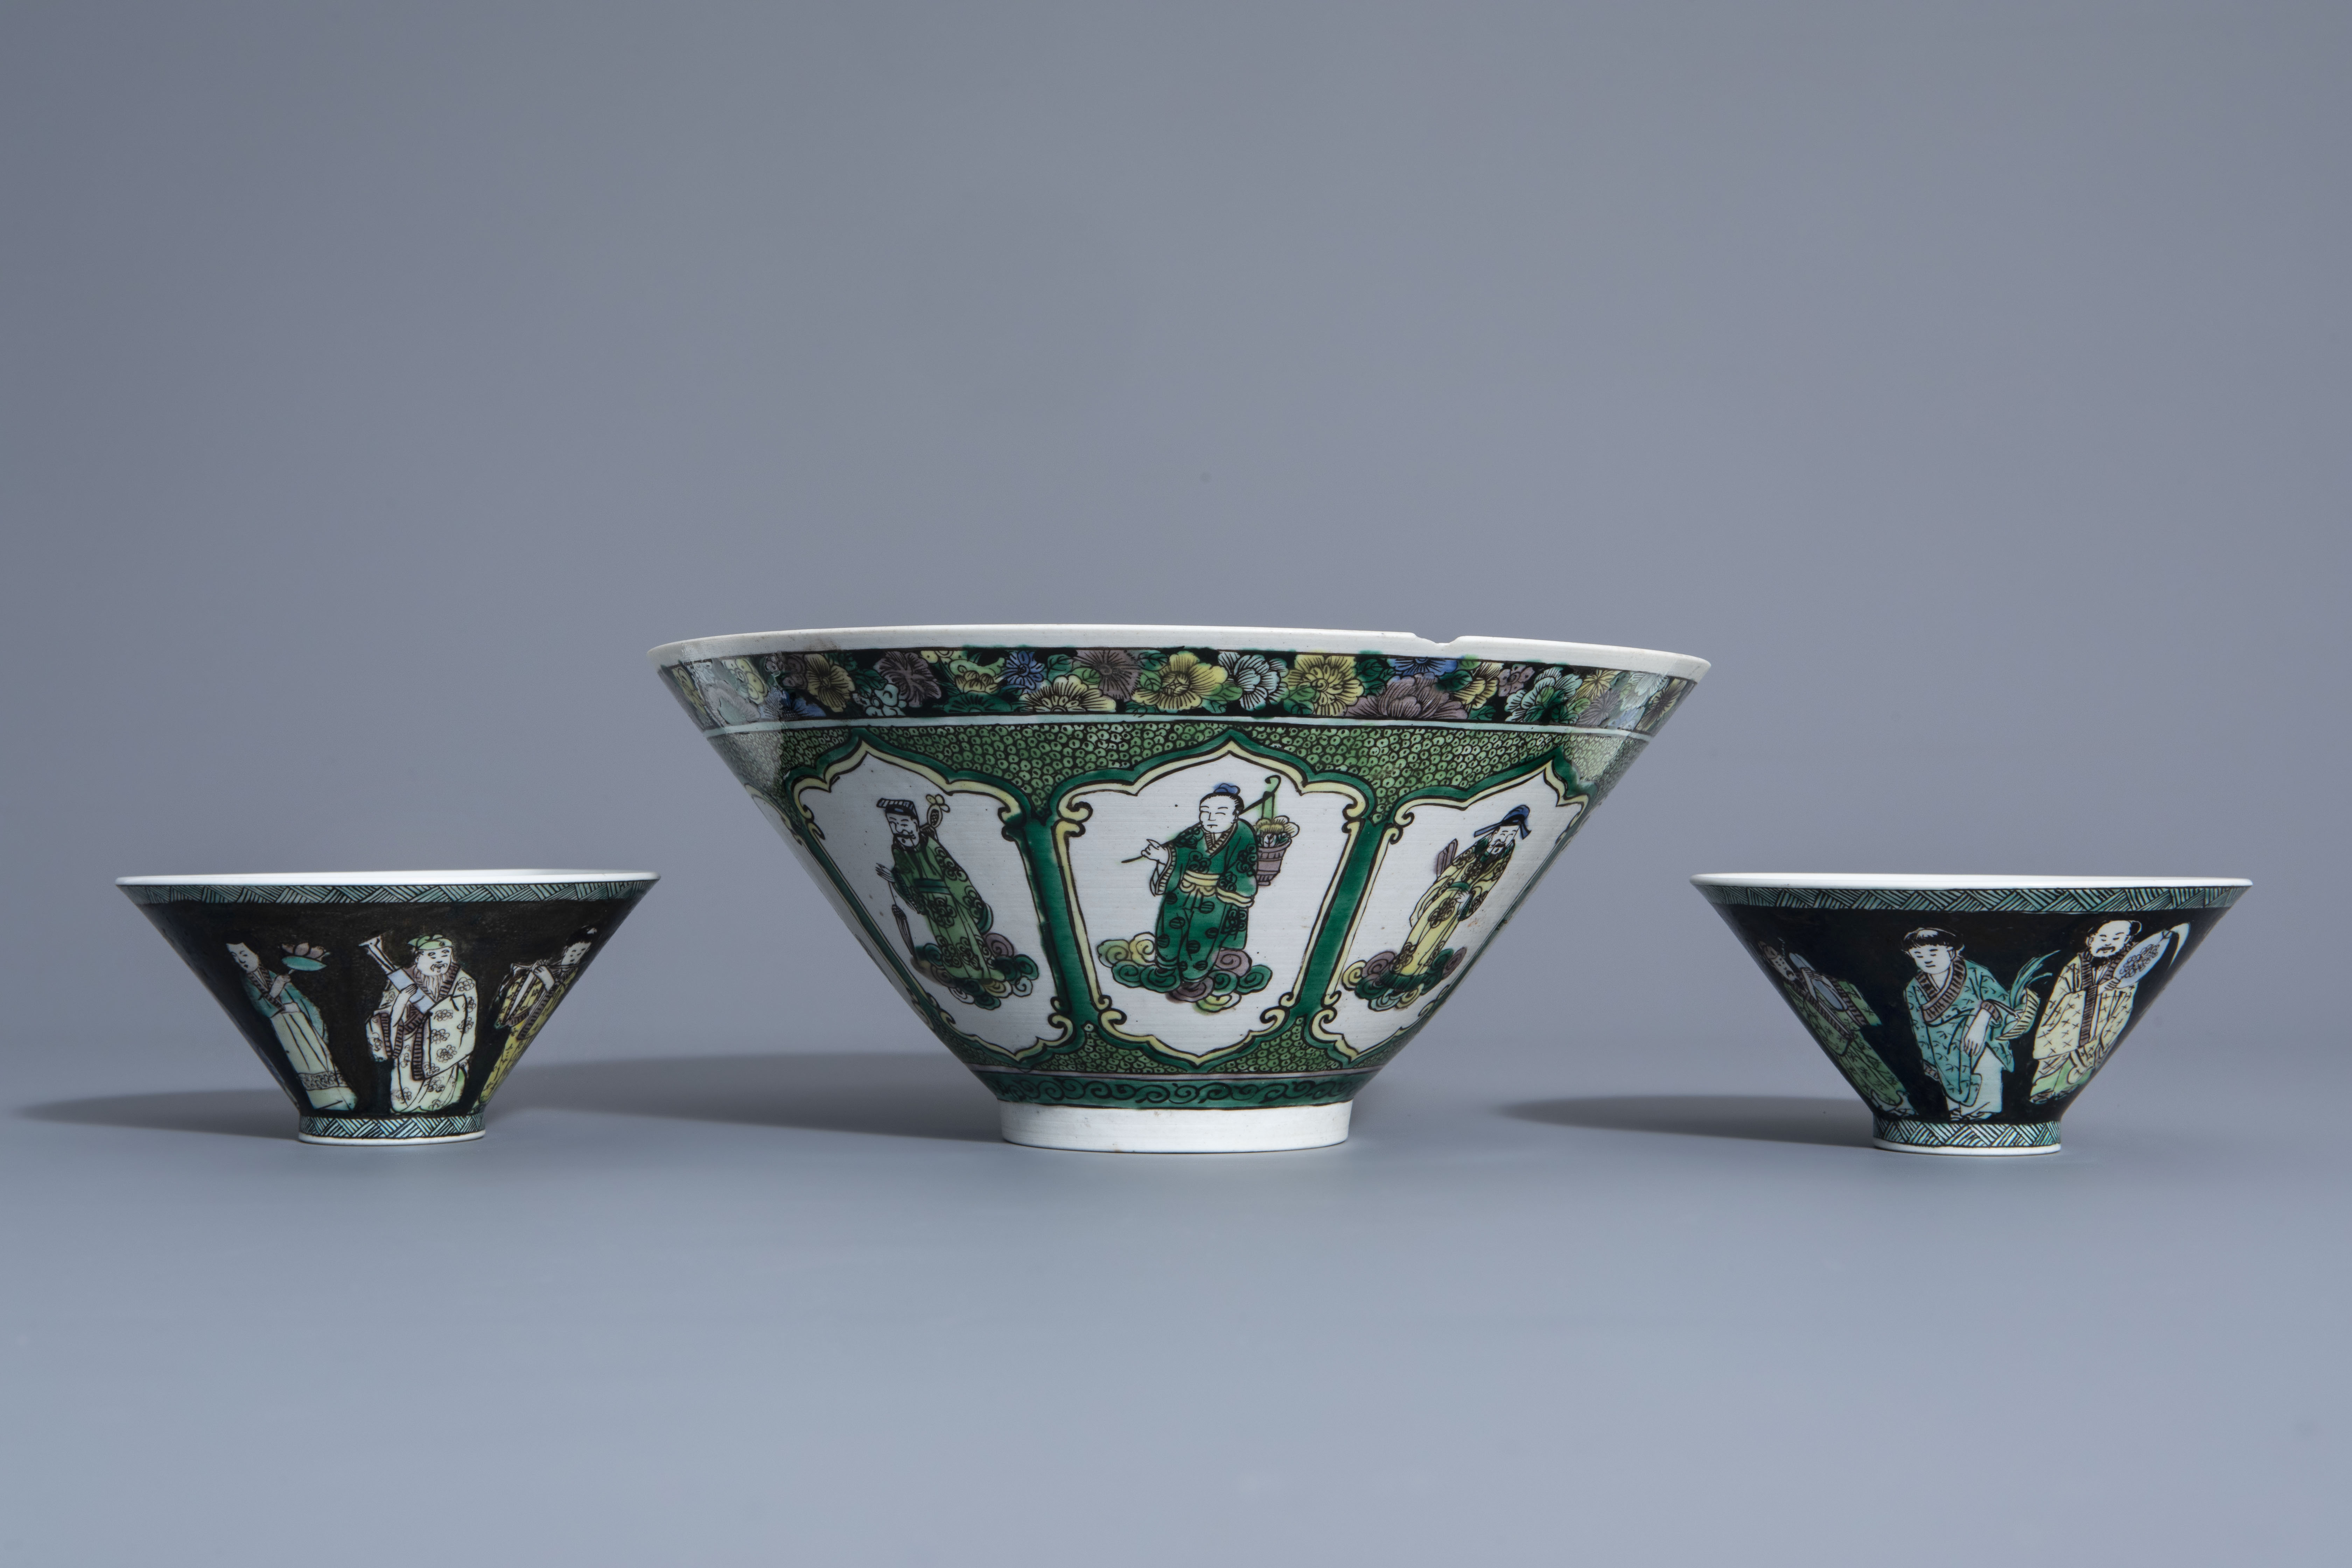 Three Chinese verte biscuit bowls with figurative design, Republic, 20th C. - Image 4 of 7